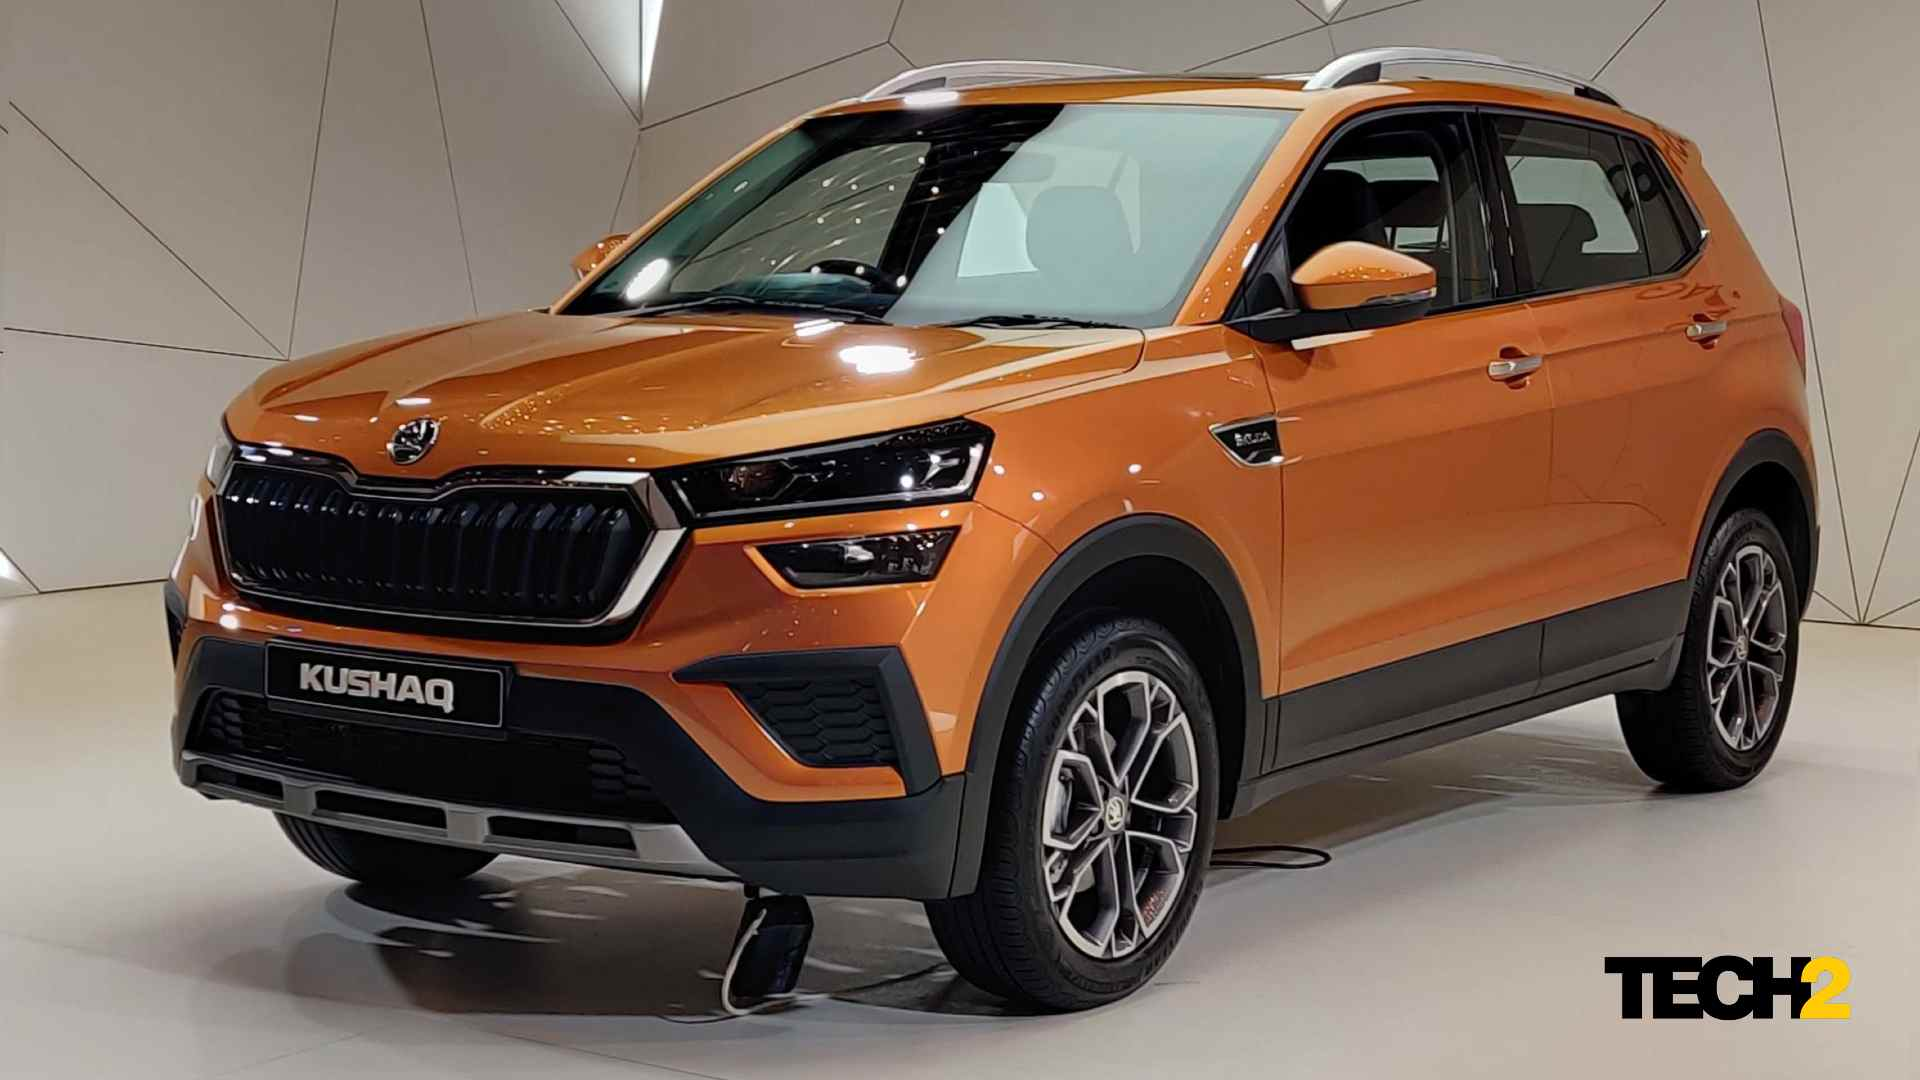 Skoda Kushaq price reveal in June, deliveries to commence in July